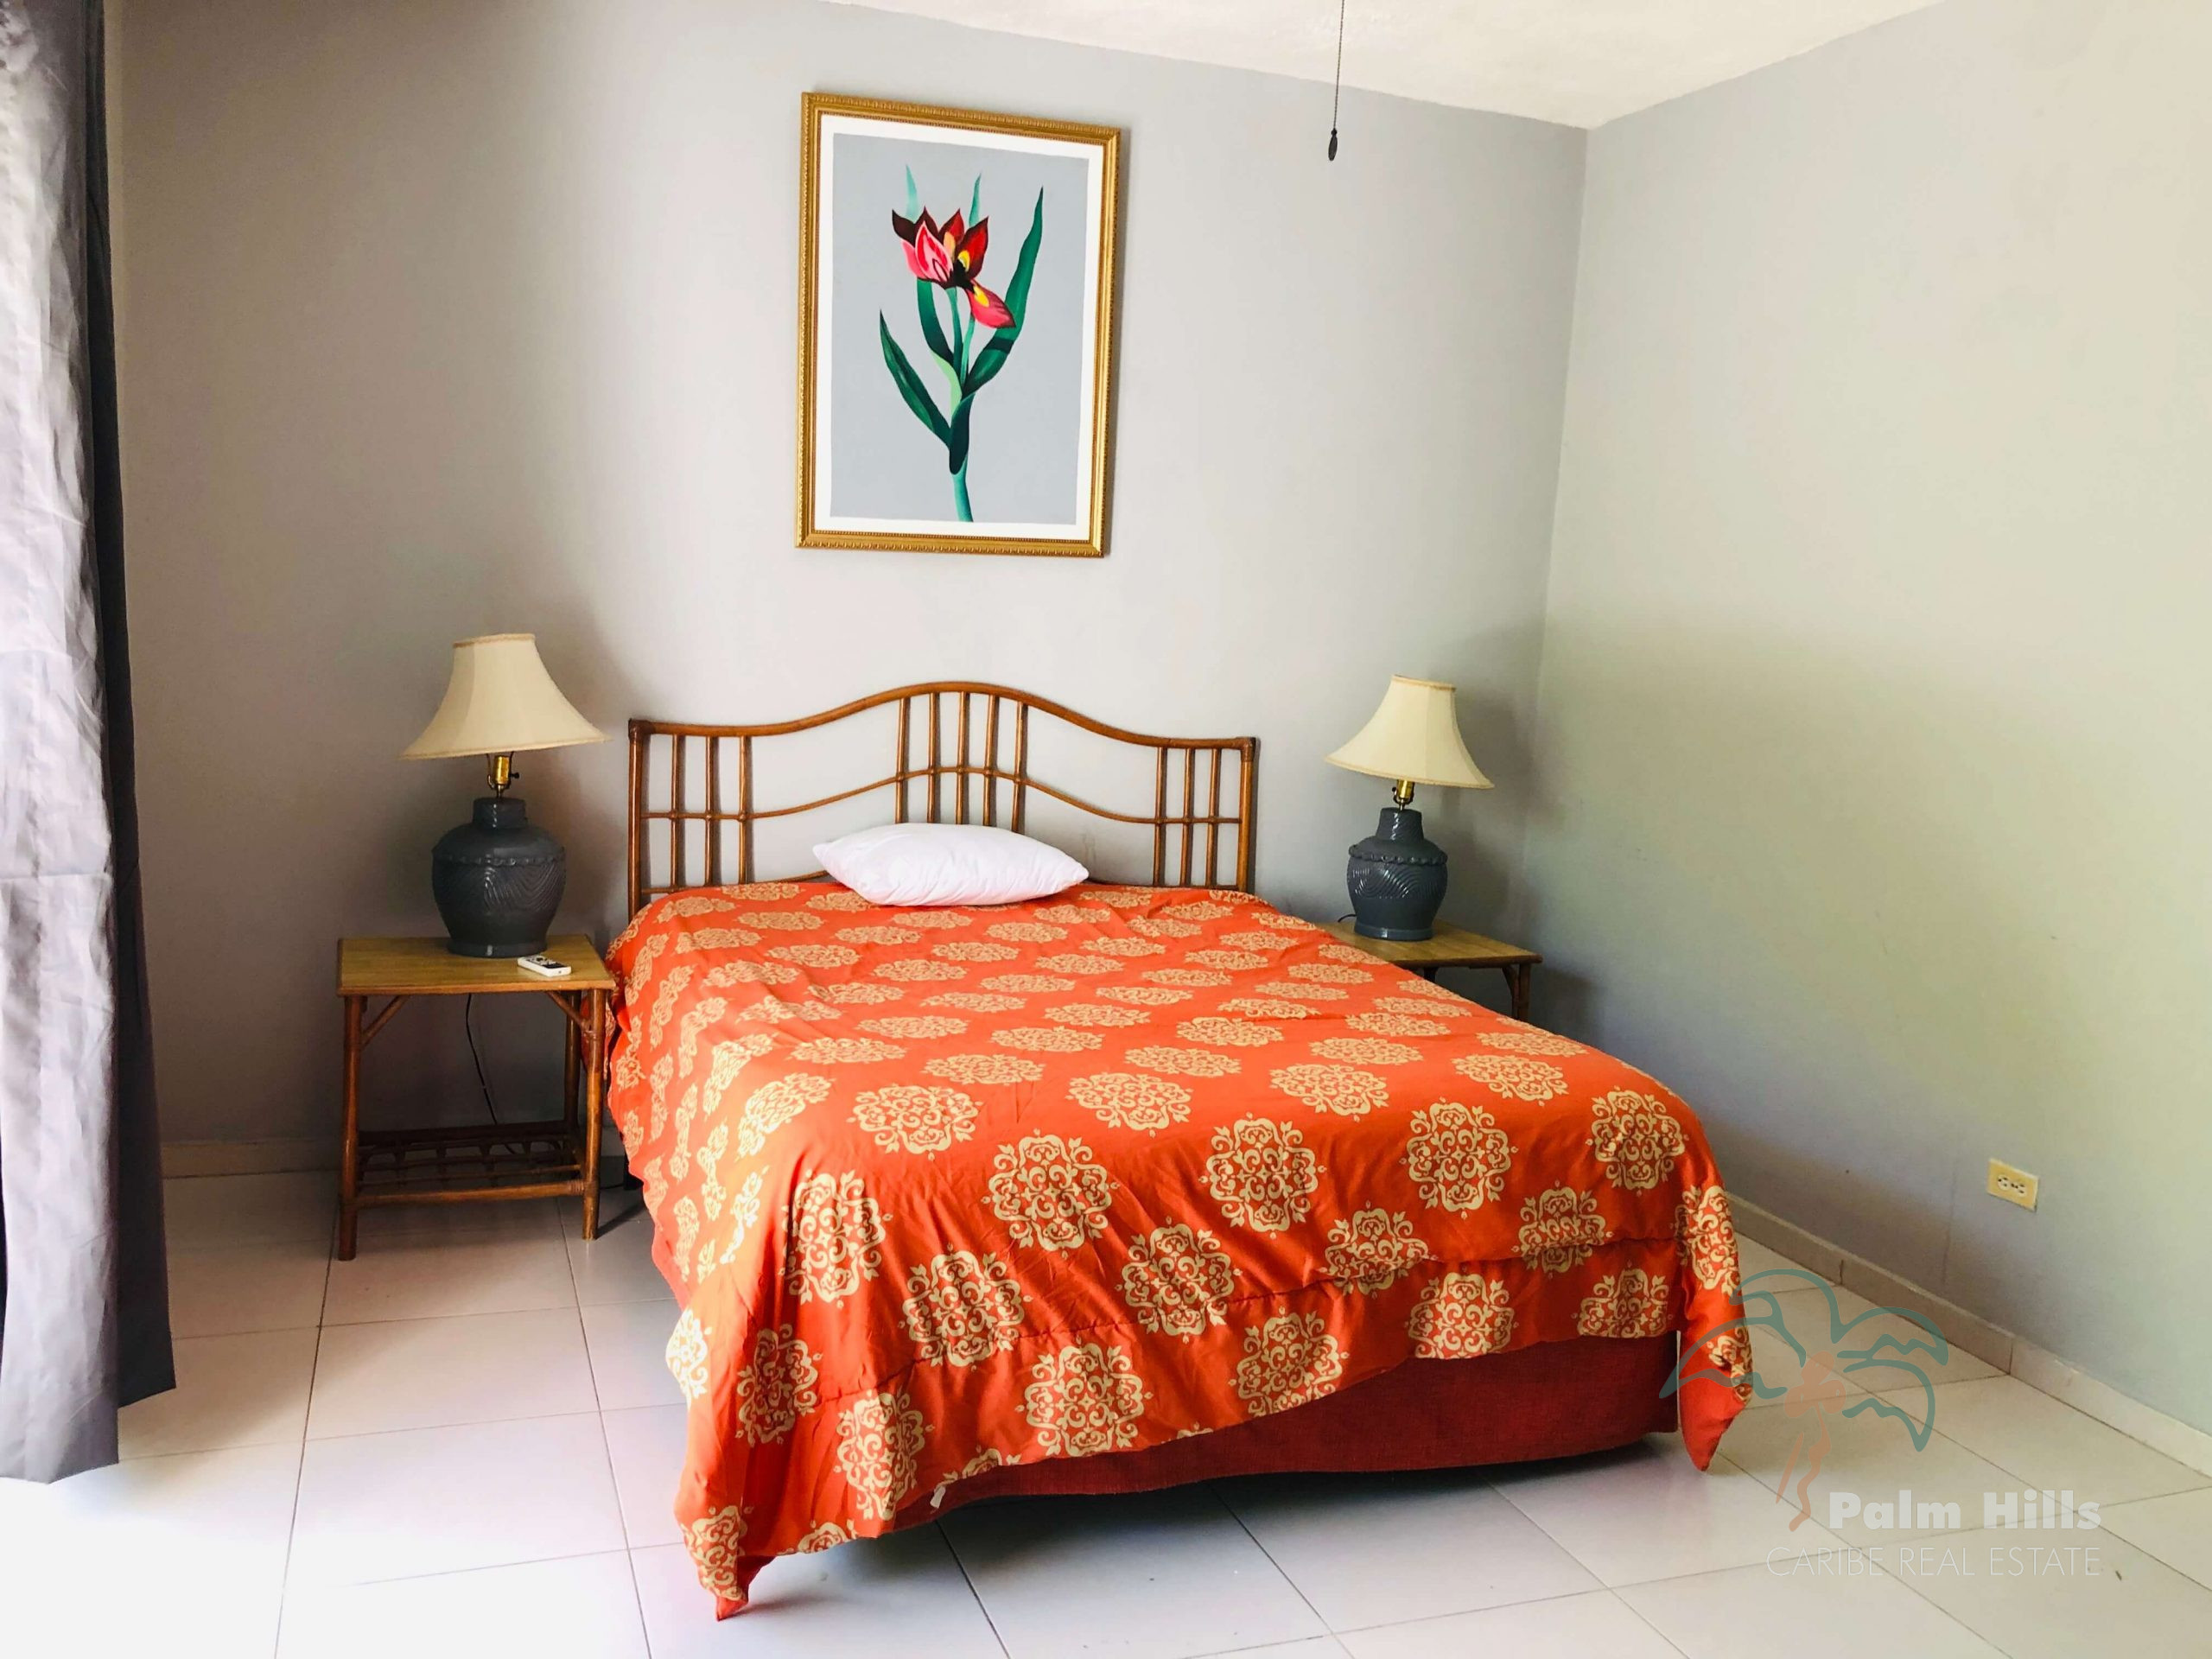 Two bedroom condo in the heart of Cabarete